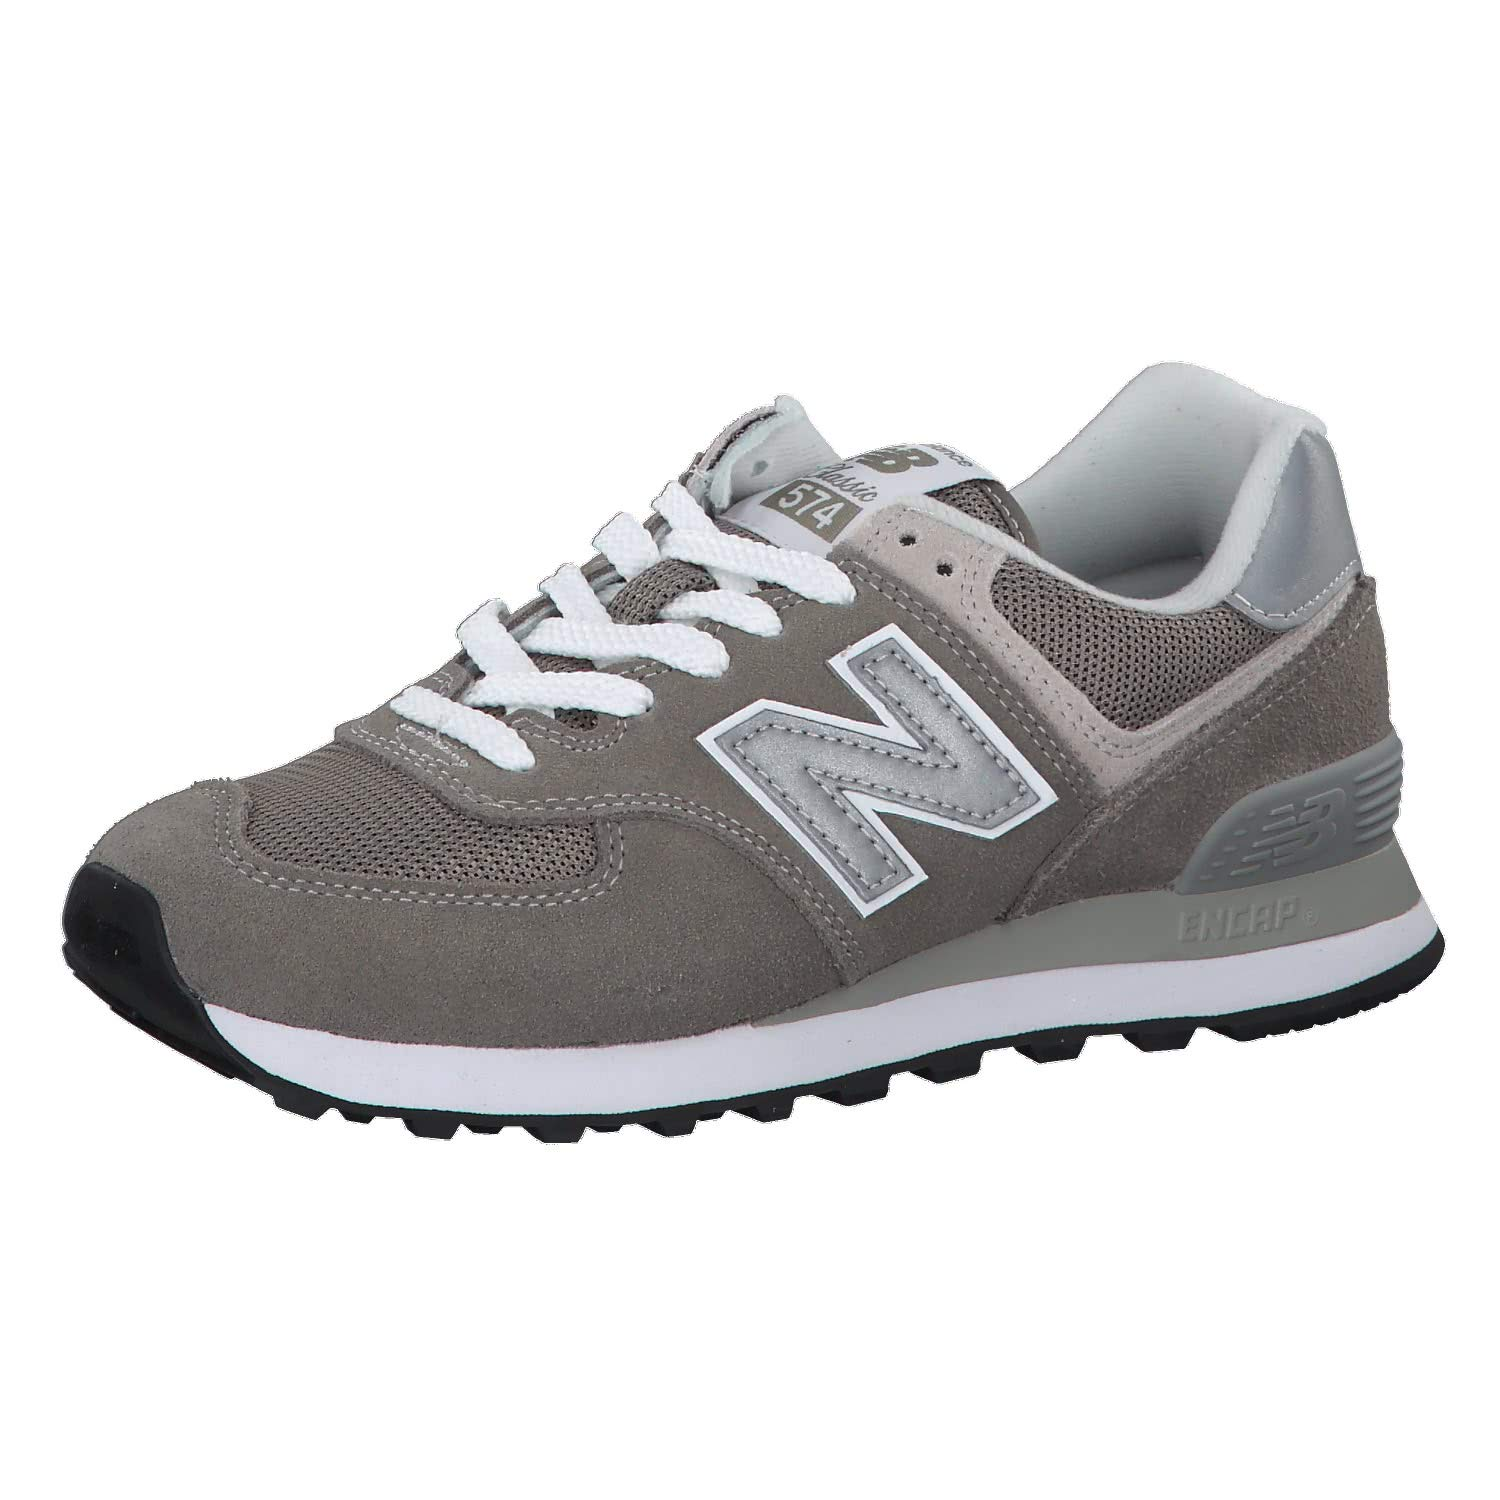 New Balance Women s 574 New England Pack Fashion Sneaker